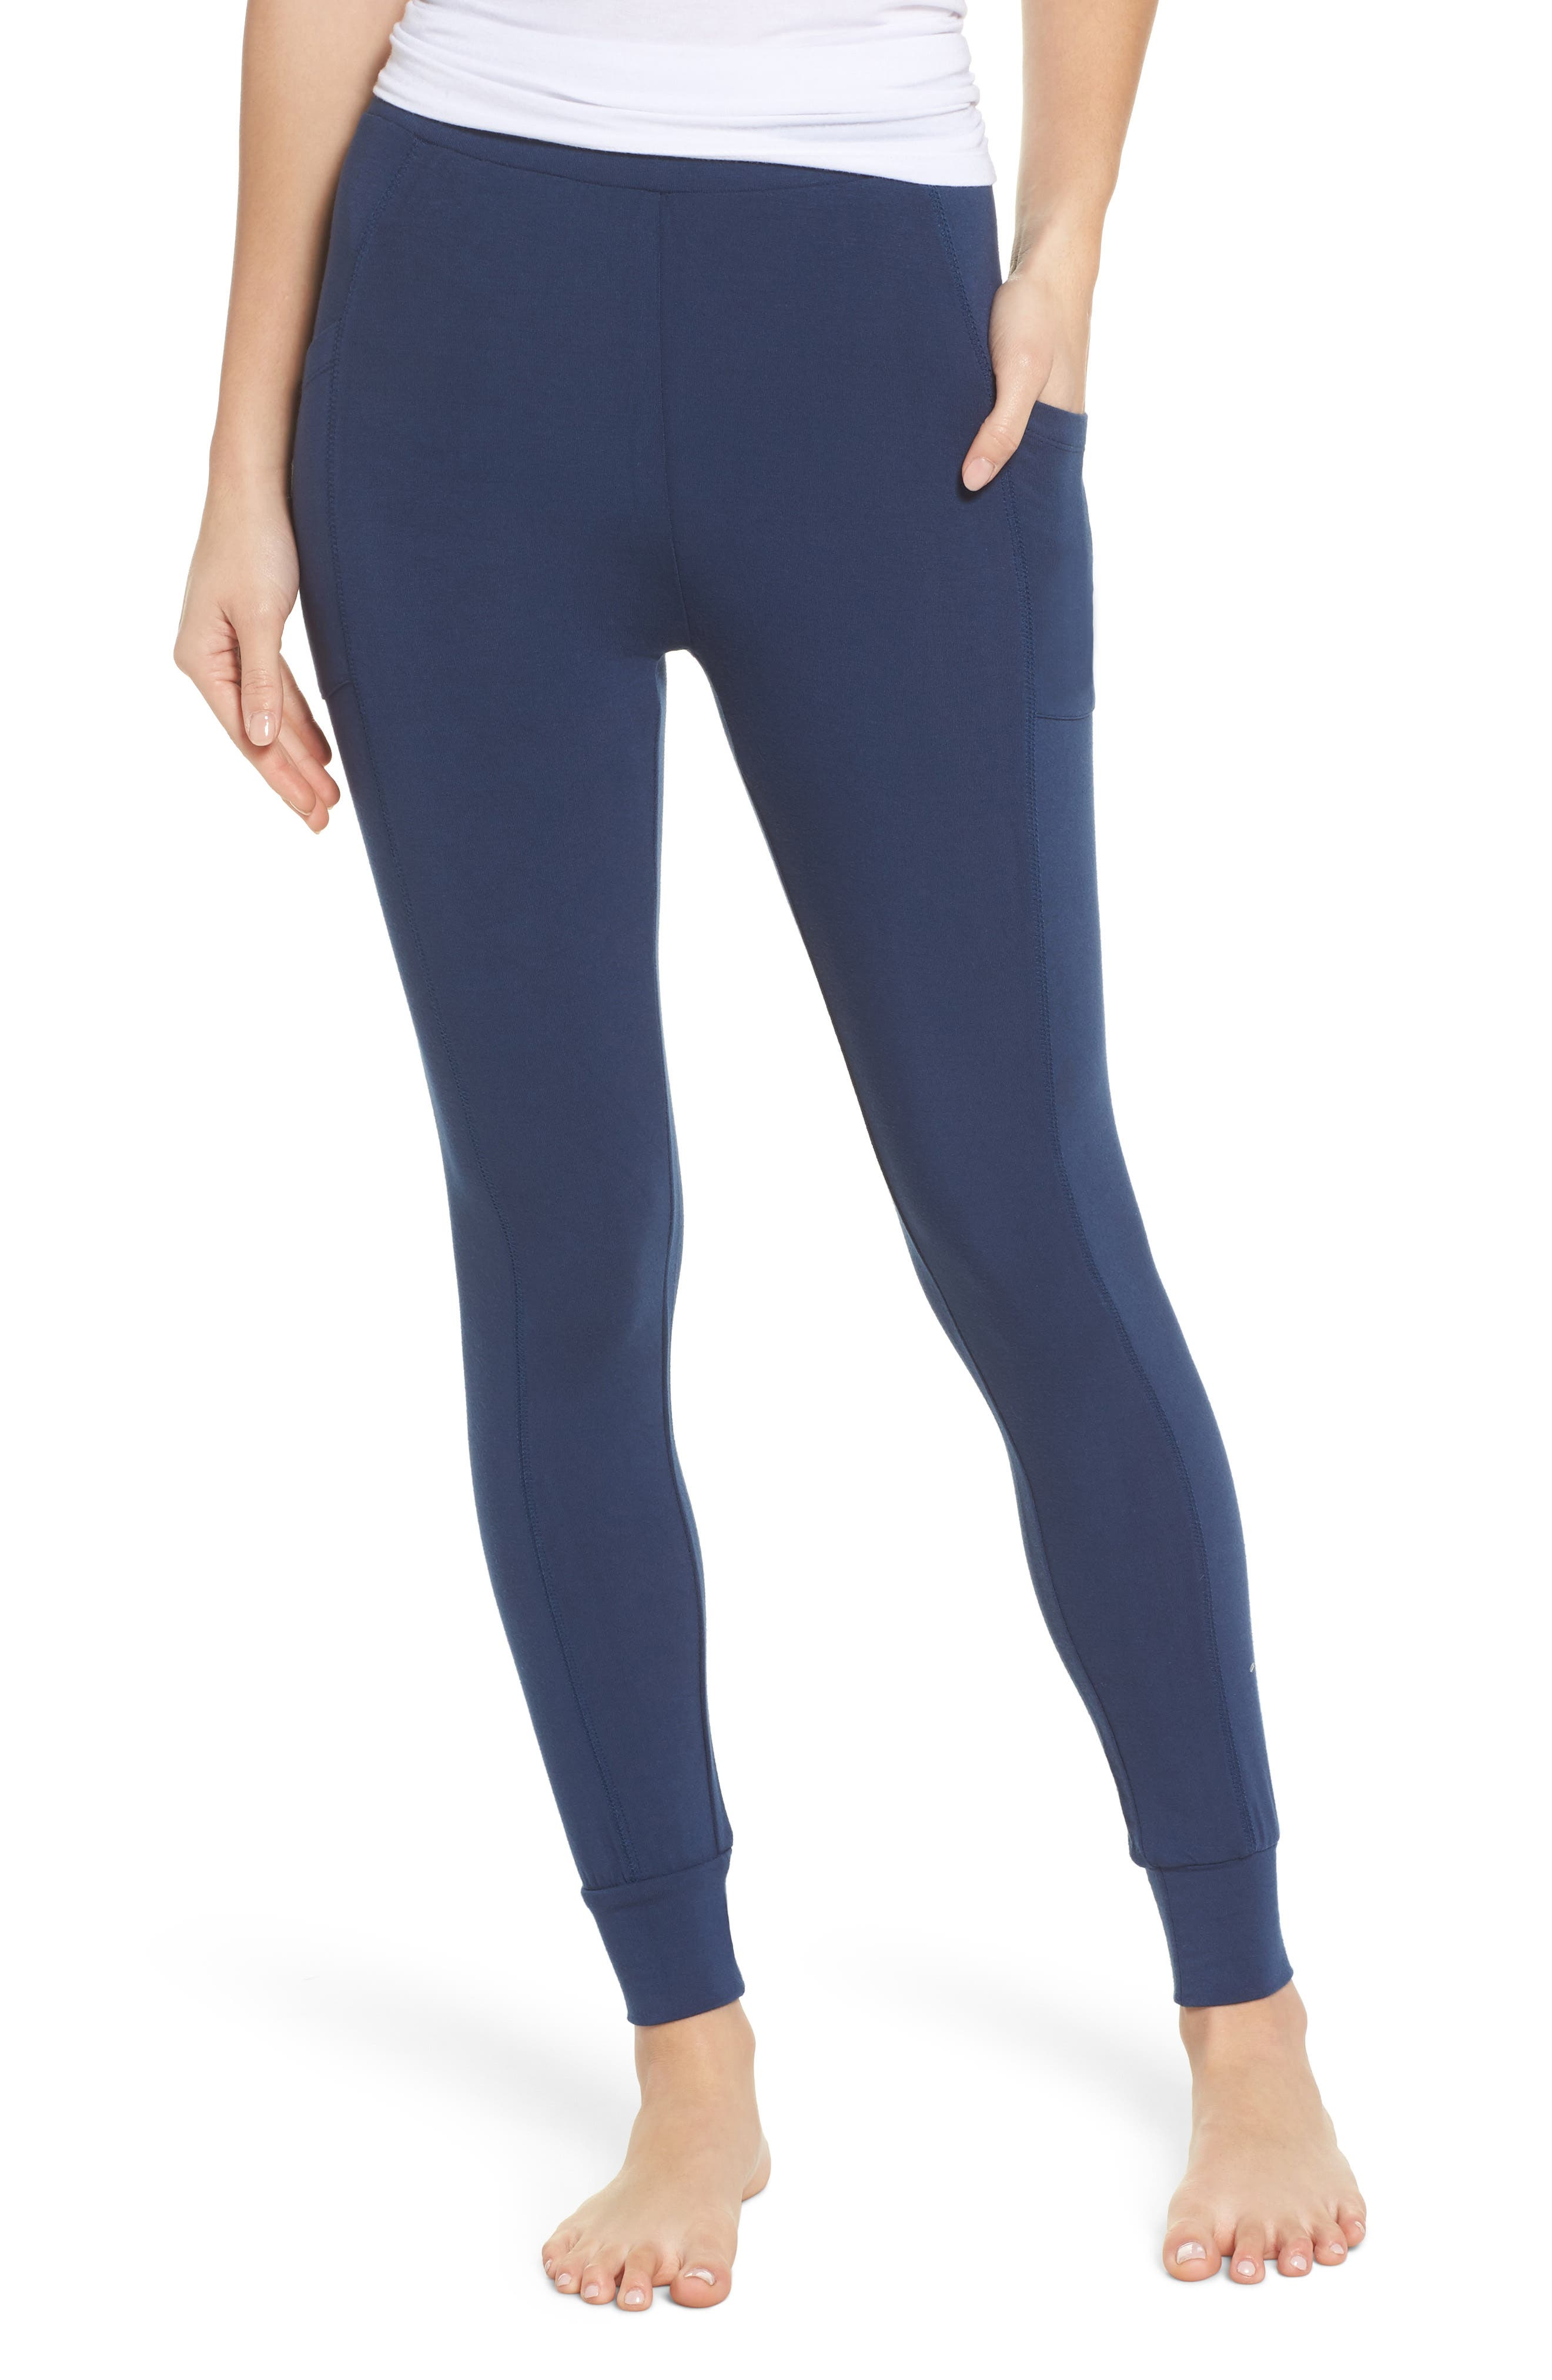 Kickin' It French Terry High Waist Lounge Leggings,                             Main thumbnail 1, color,                             400